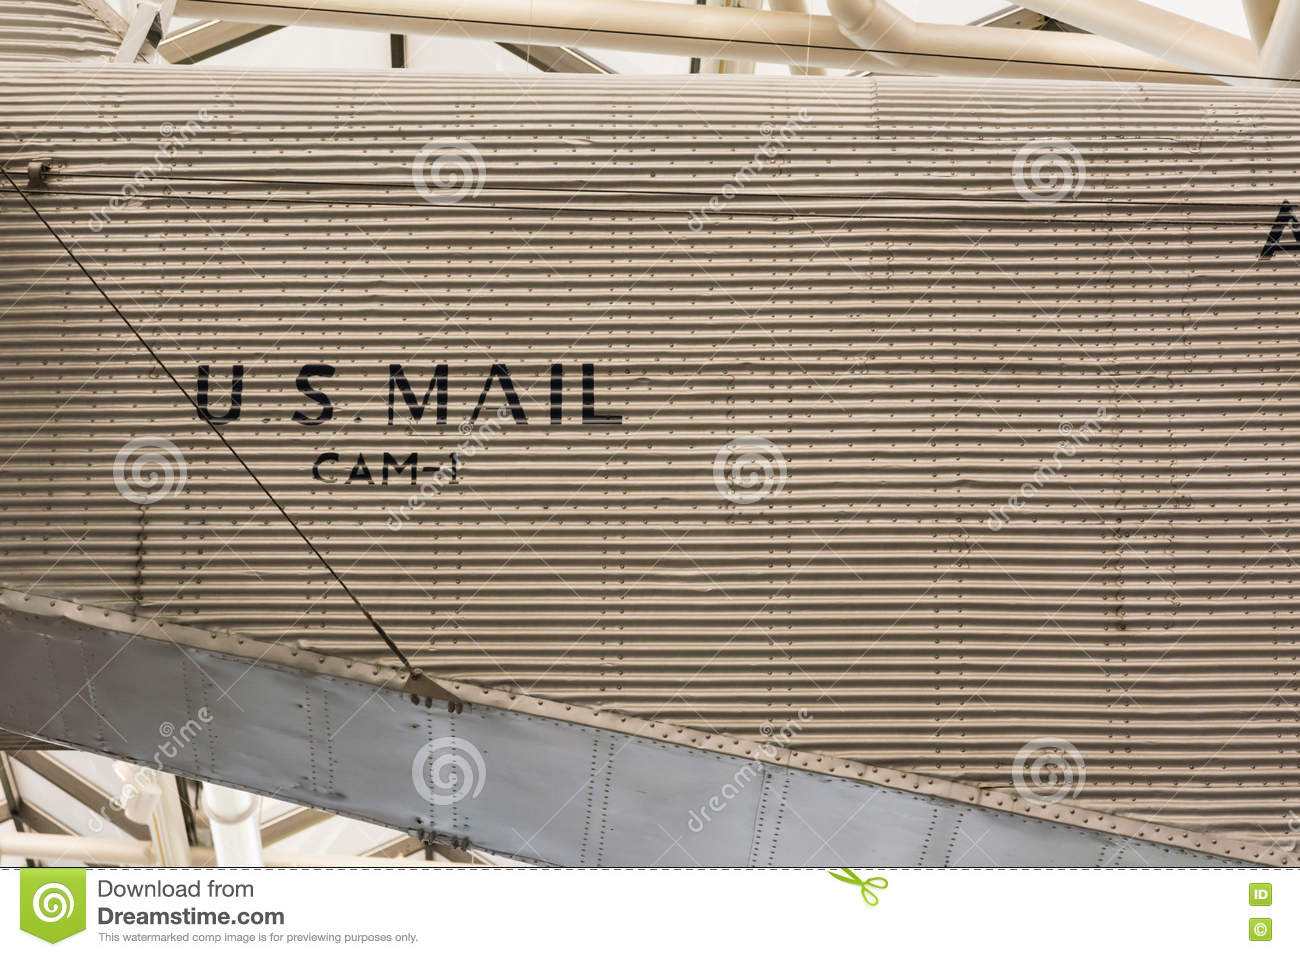 US Mail Airplane Delivery Retro CAM-1 Vintage Old Technology Met